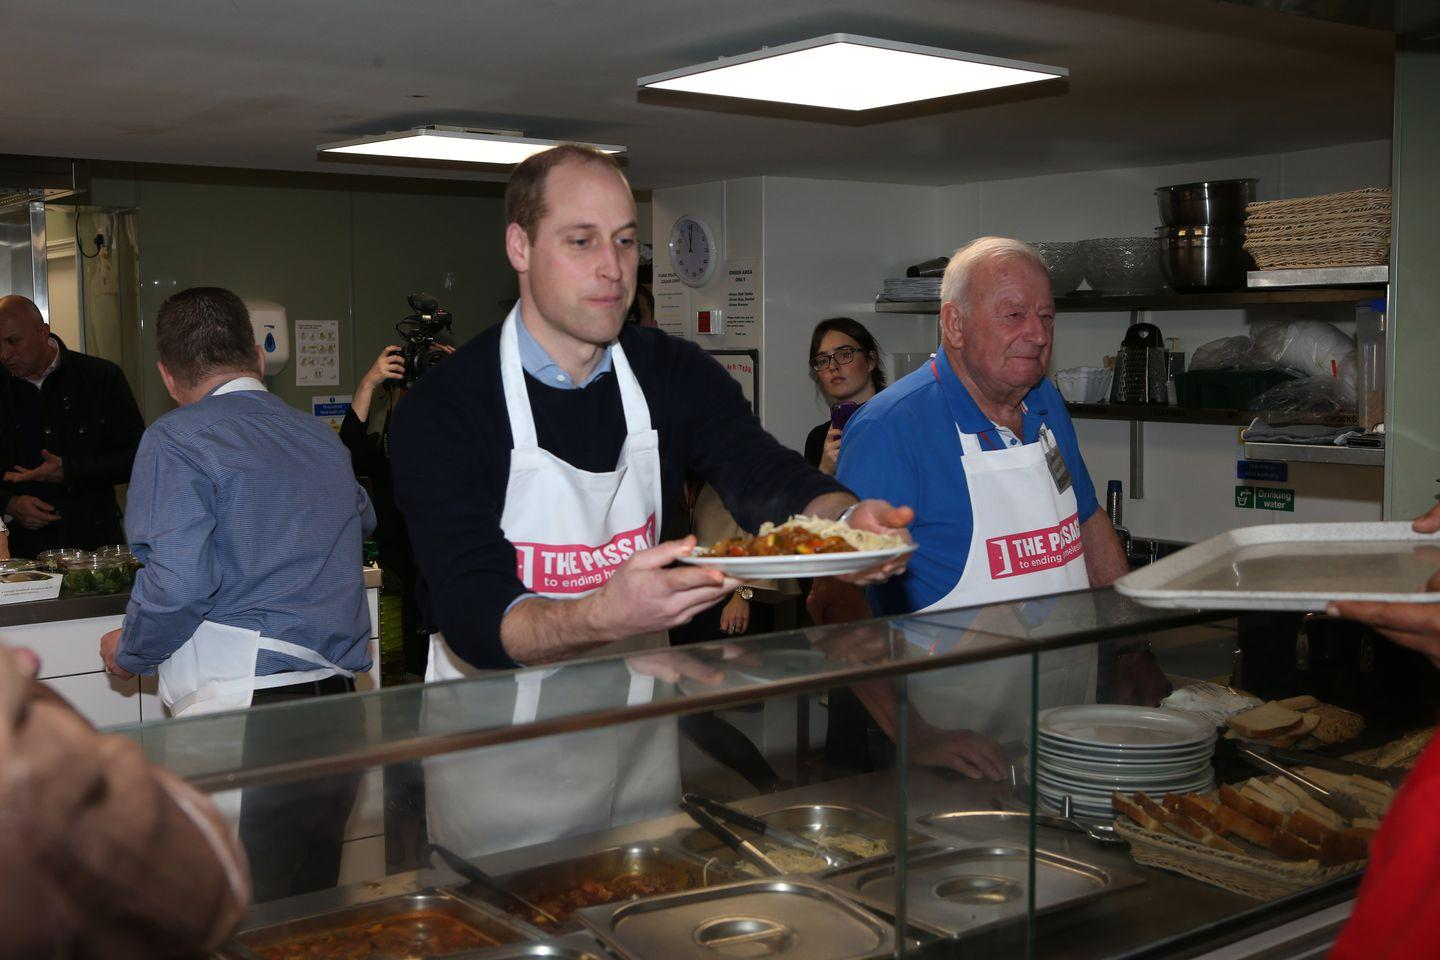 William Cooks at a Homeless Shelter He Visited with Princess Diana